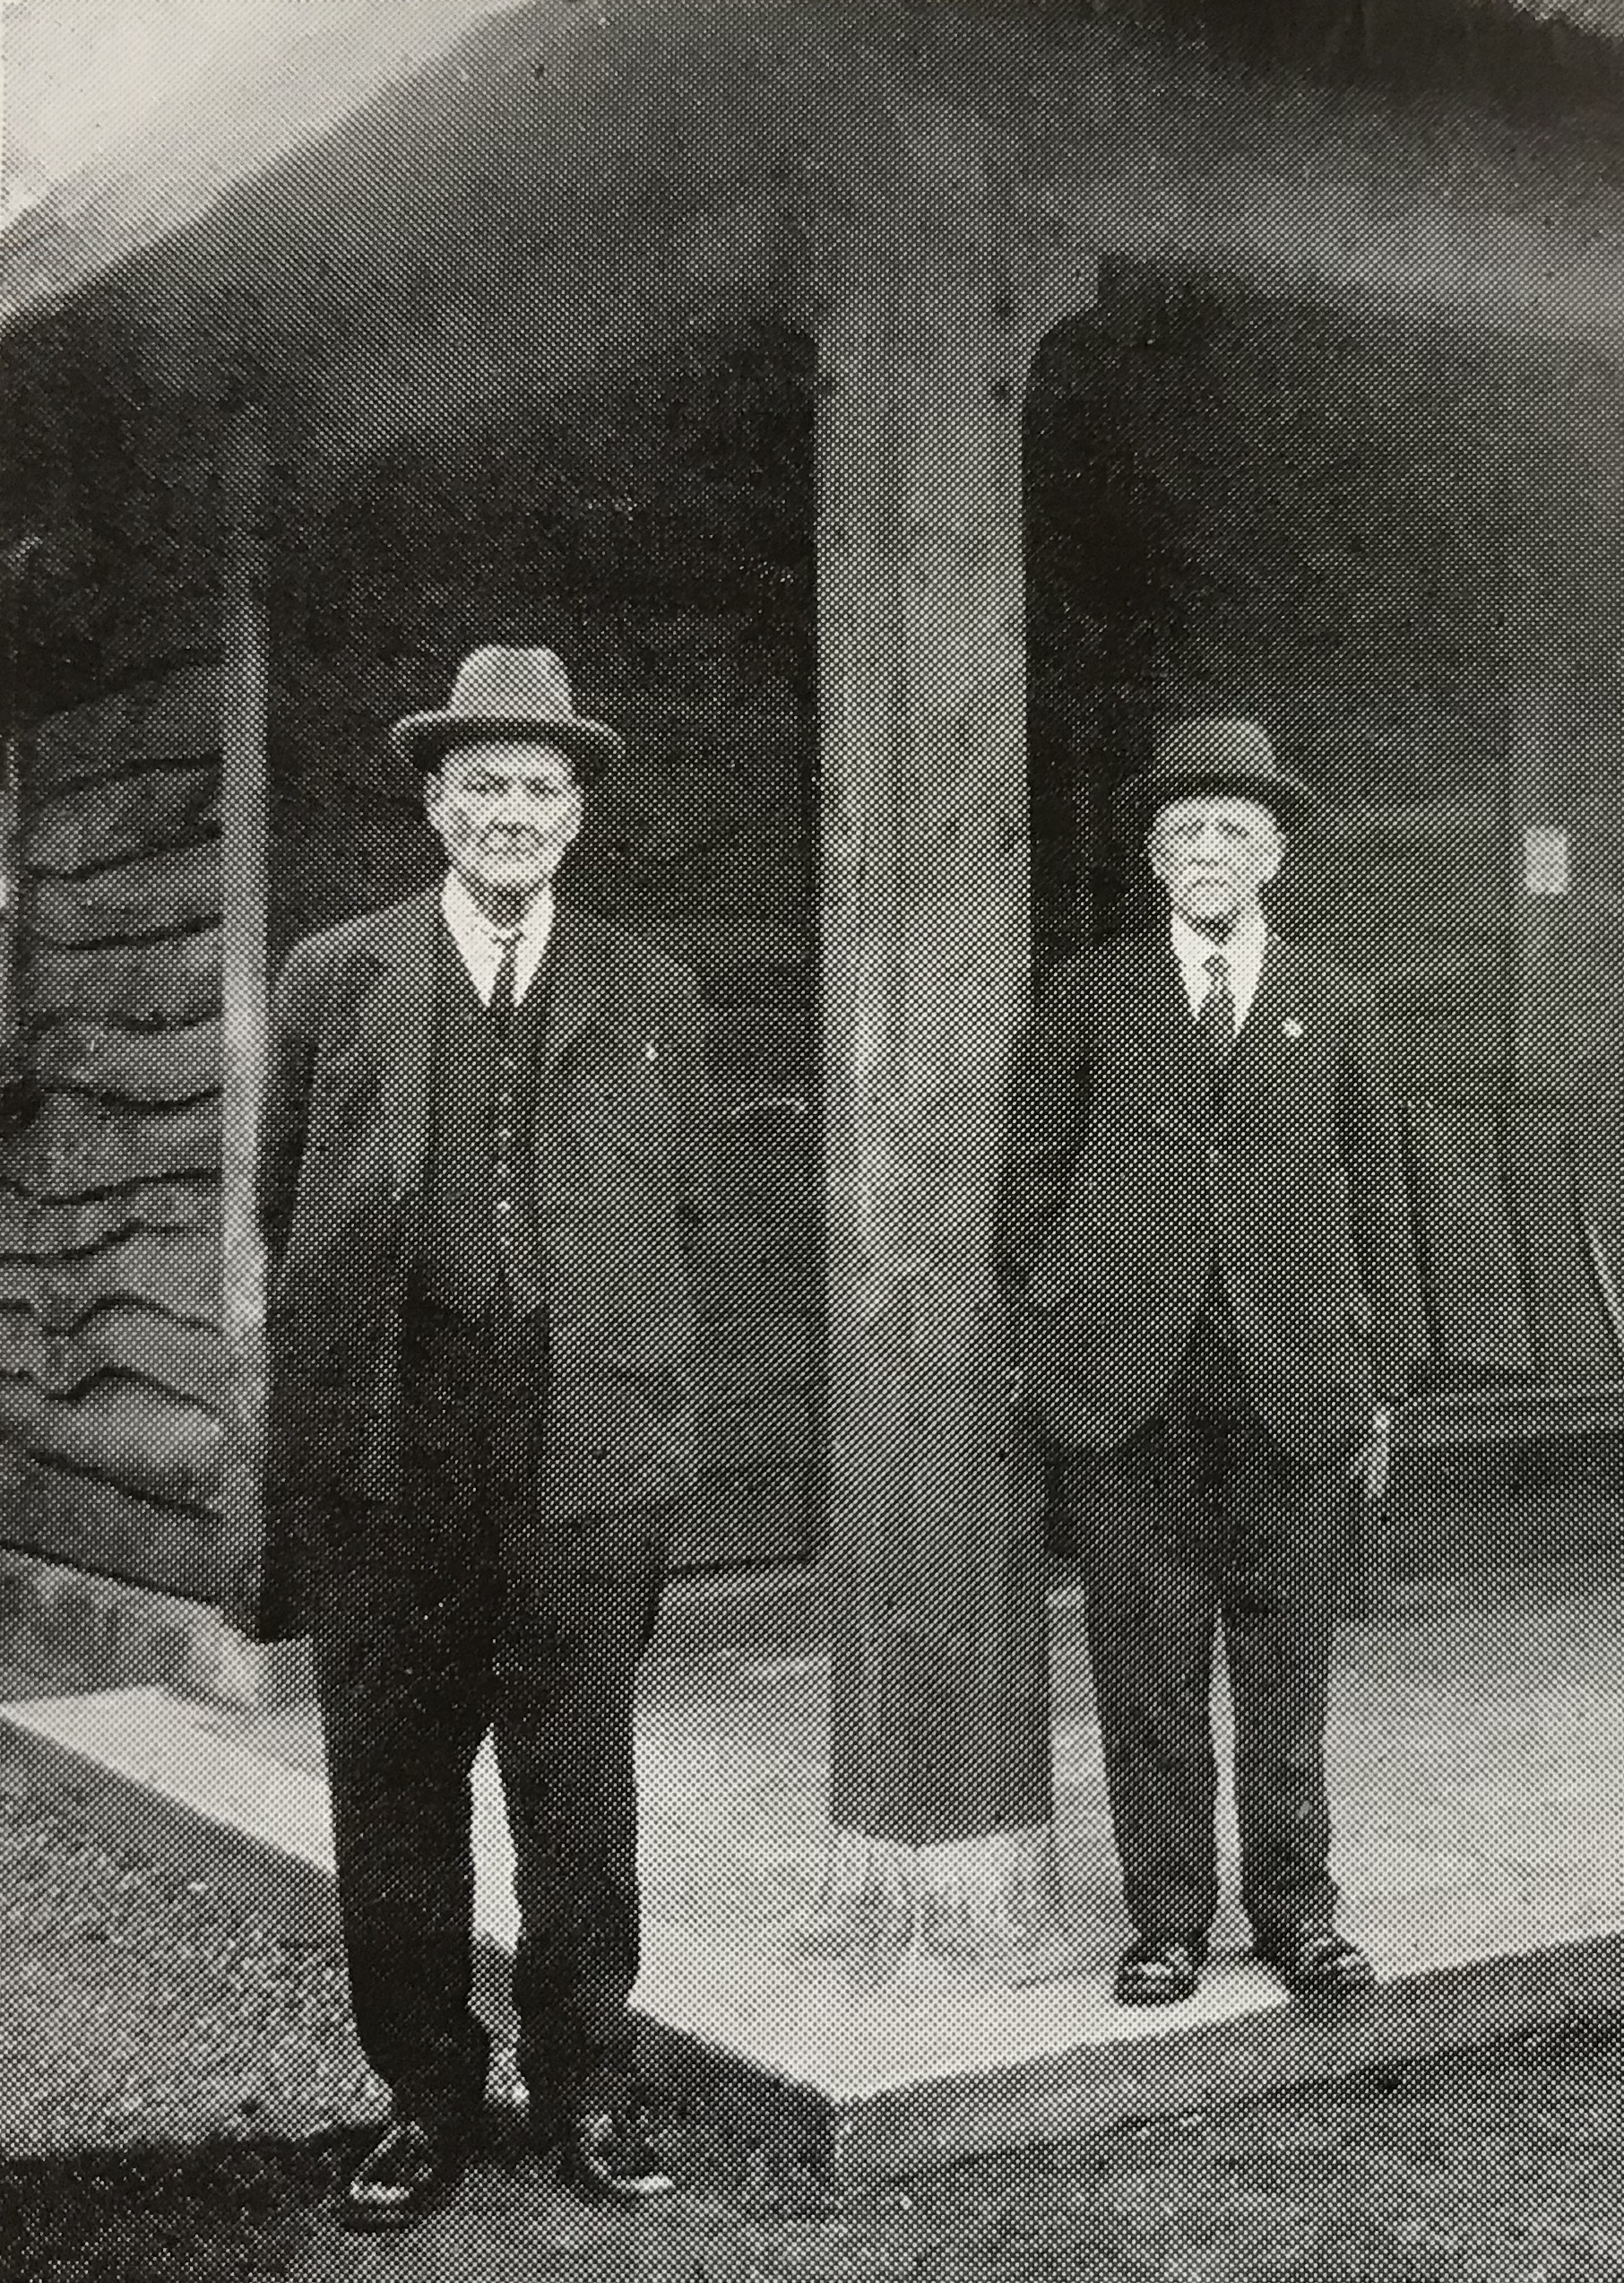 FOUNDING MEMBERS OF THE SOR MOVEMENT - LISTER MUFF AND  W J. OSTER